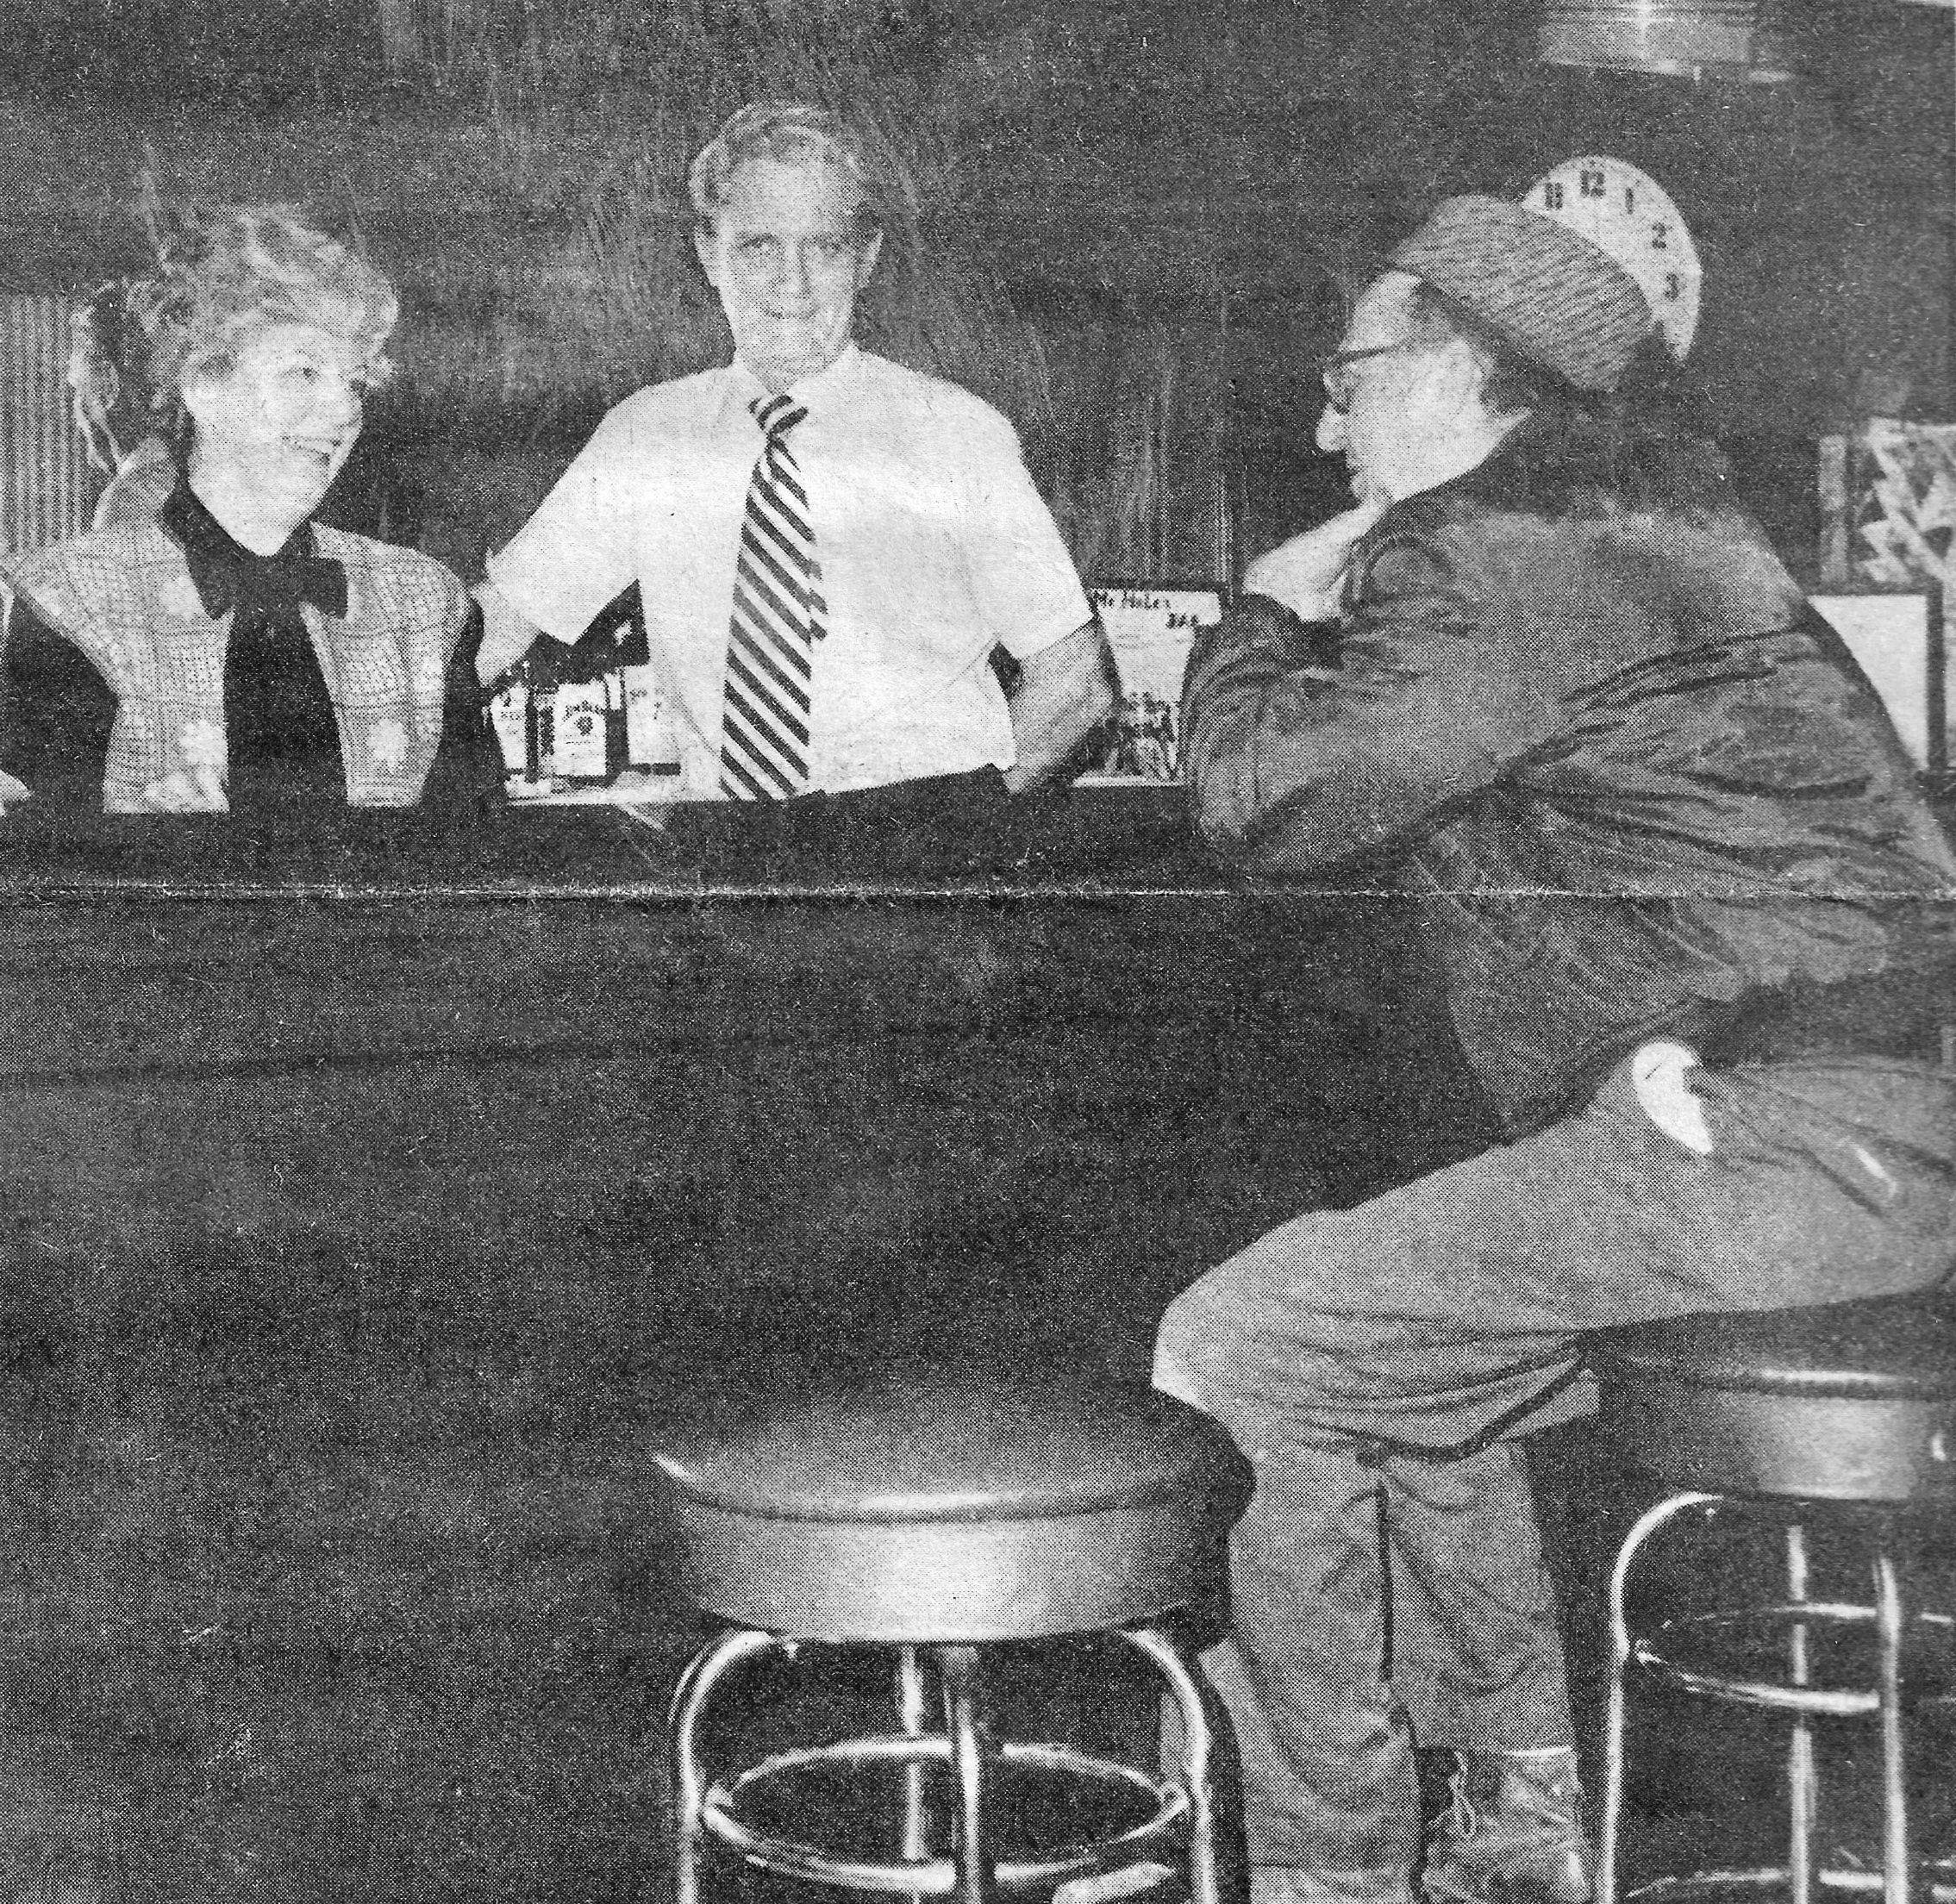 Ginny and Jim McHale chat with regular customer Larry Williams shortly before retiring from their bar. McHale's Tavern was a three-generation family business, originally at Fischrupp and New York Avenues. That was when it was established in the 1880s. It later moved to 1312 119th Street and remained in operation (except for the Prohibition years) until it was sold in 1978 and became the Center Lounge. (The Calumet Day photograph)